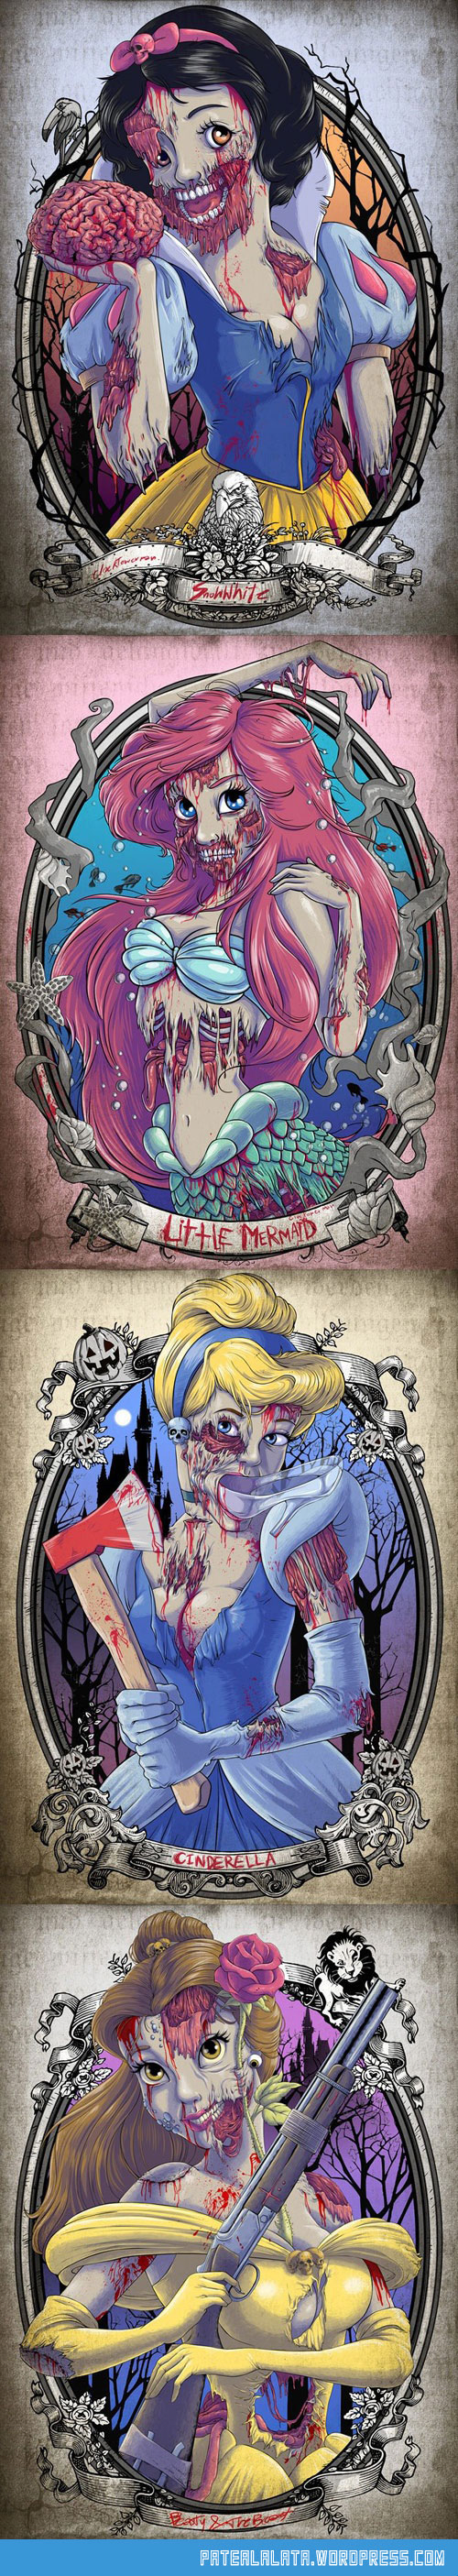 cool-zombie-Disney-princesess